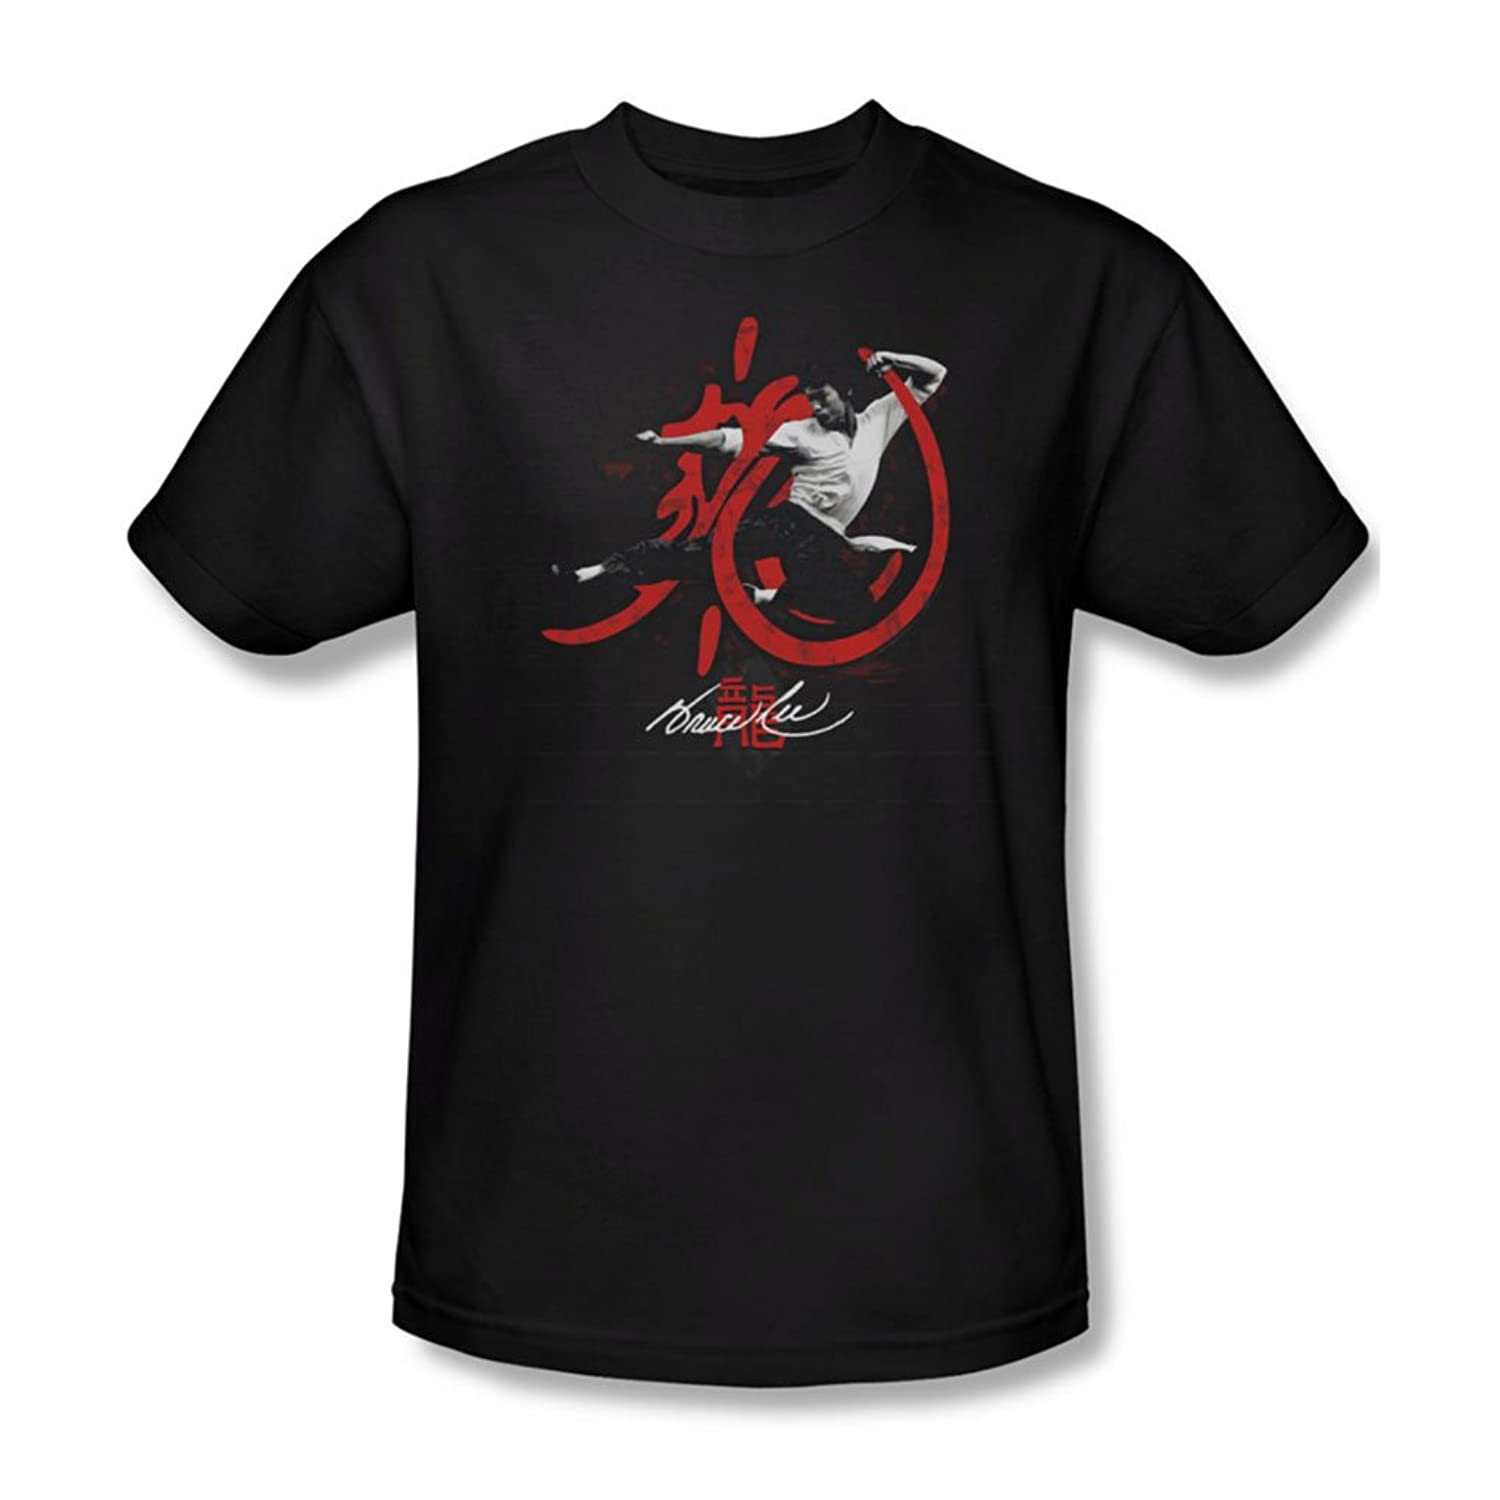 Bruce Lee - Mens High Flying T-Shirt In Black